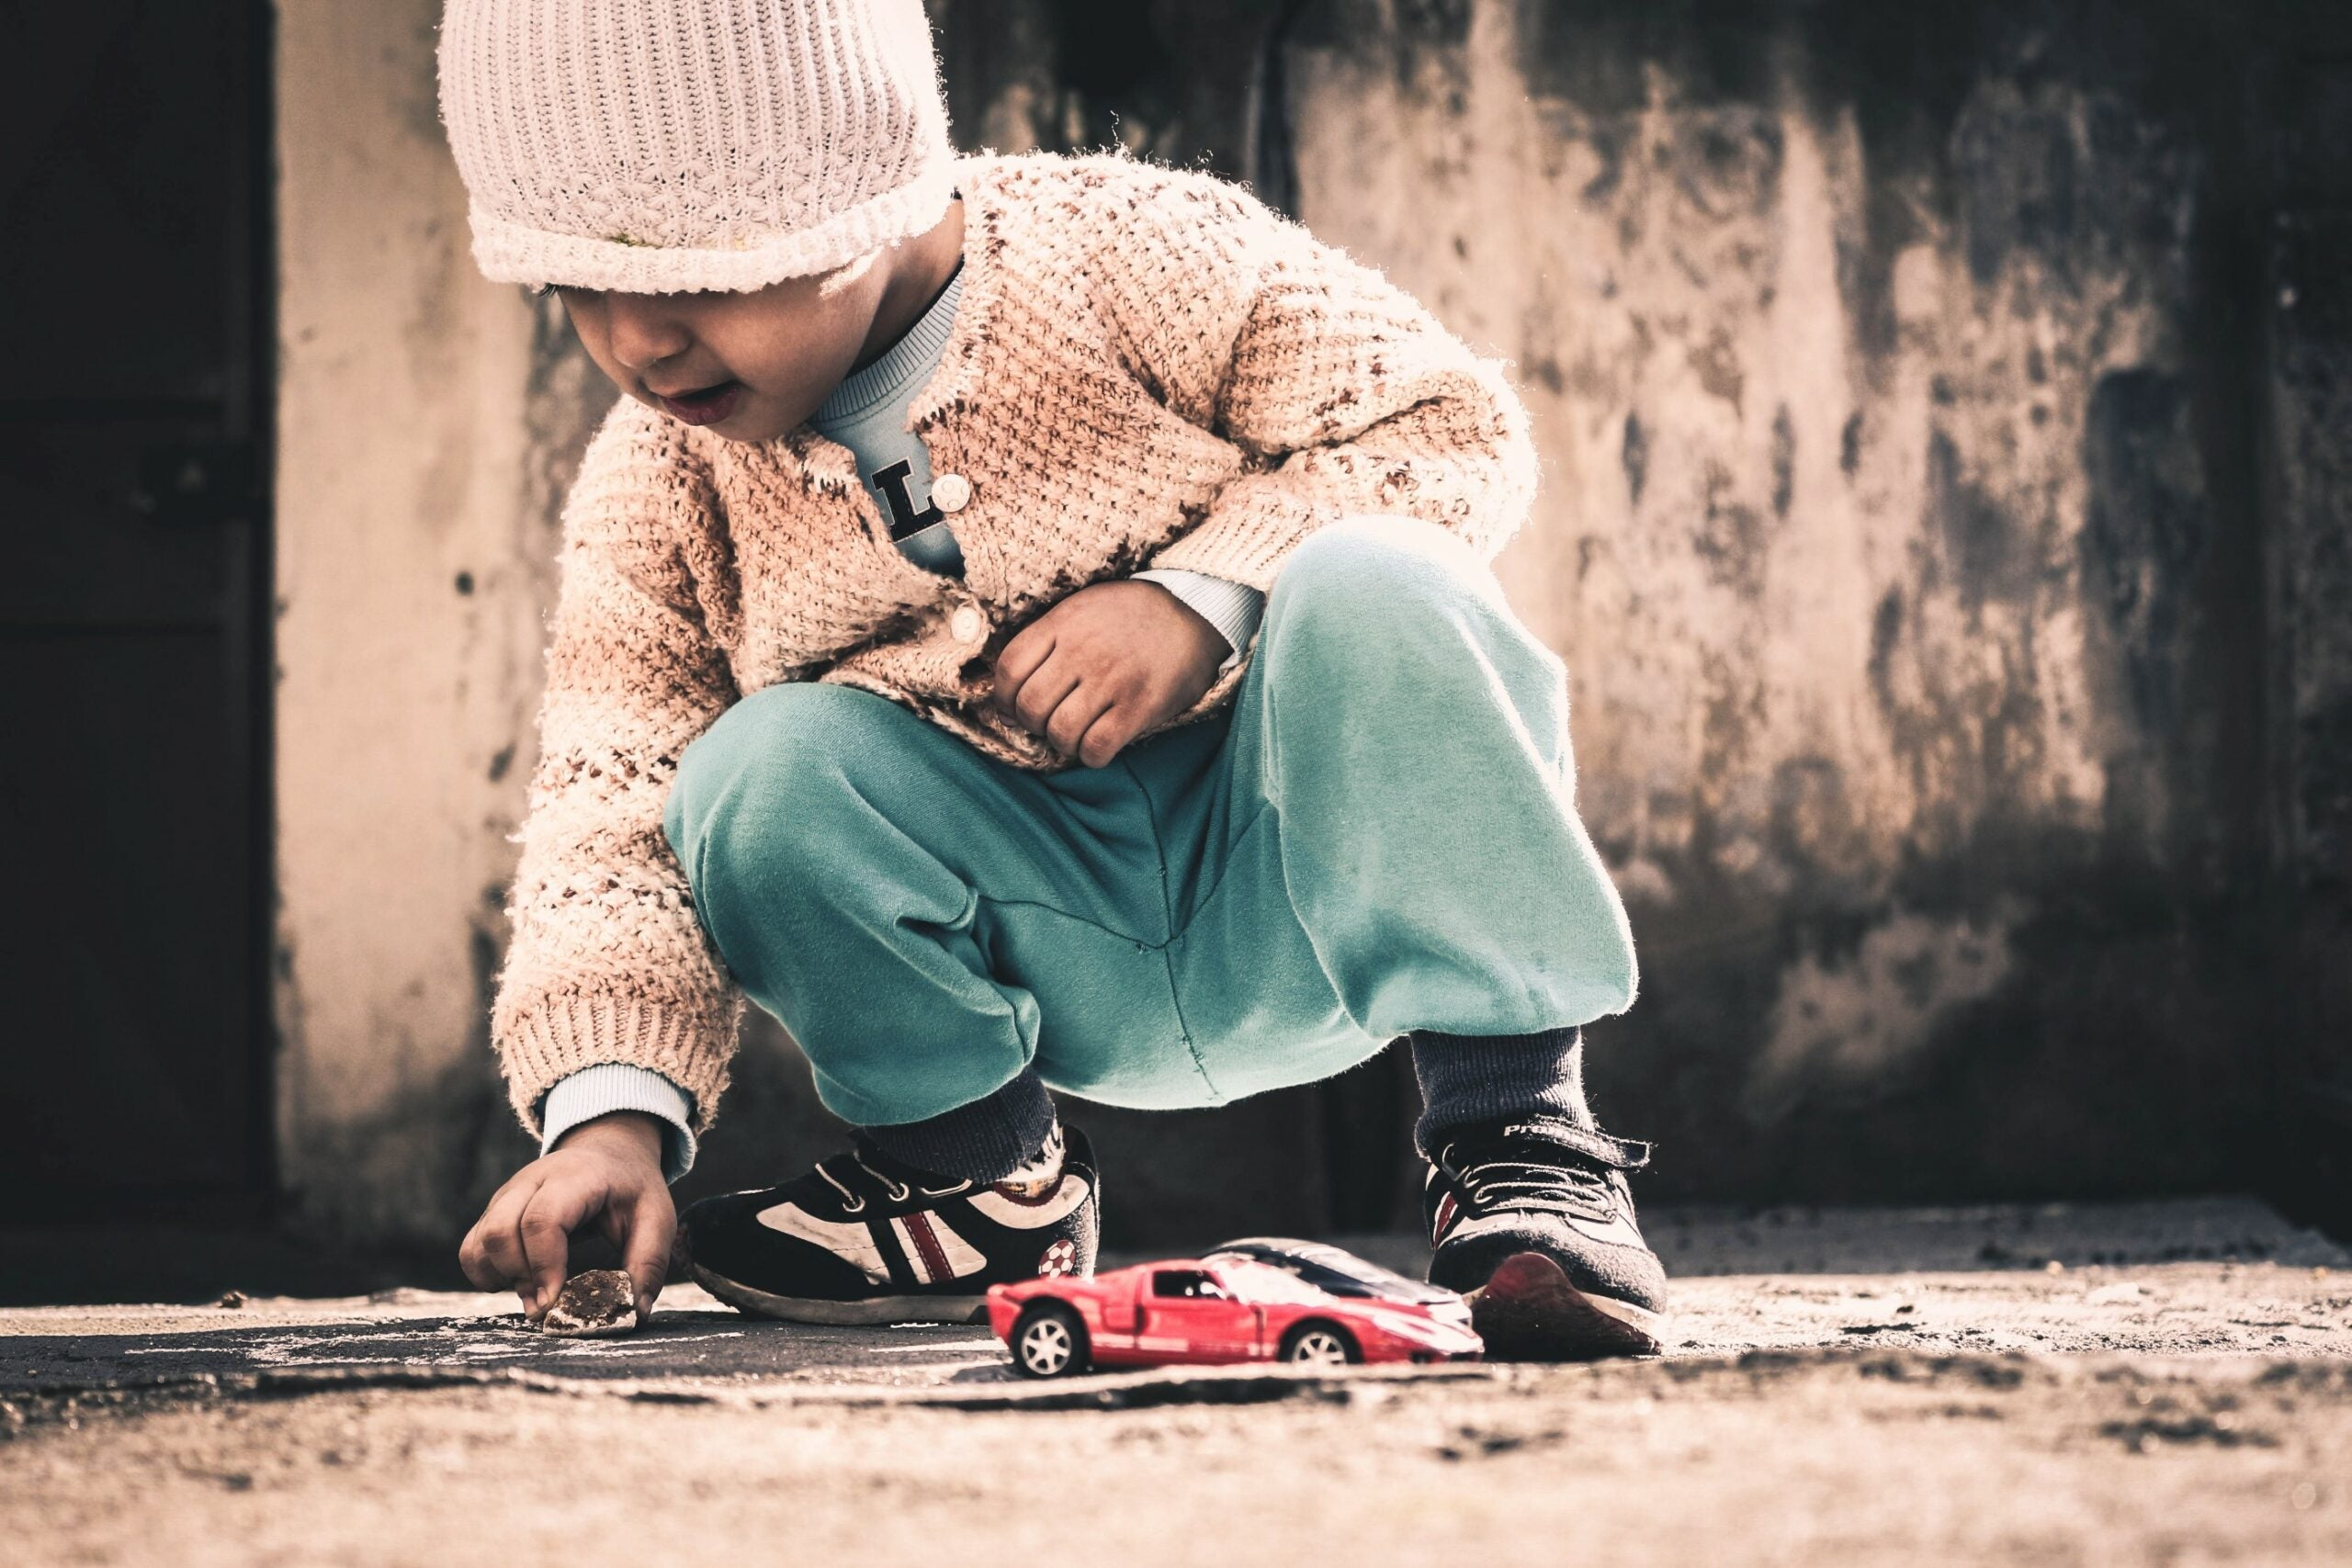 The devastating effects of childhood lead exposure could last a lifetime